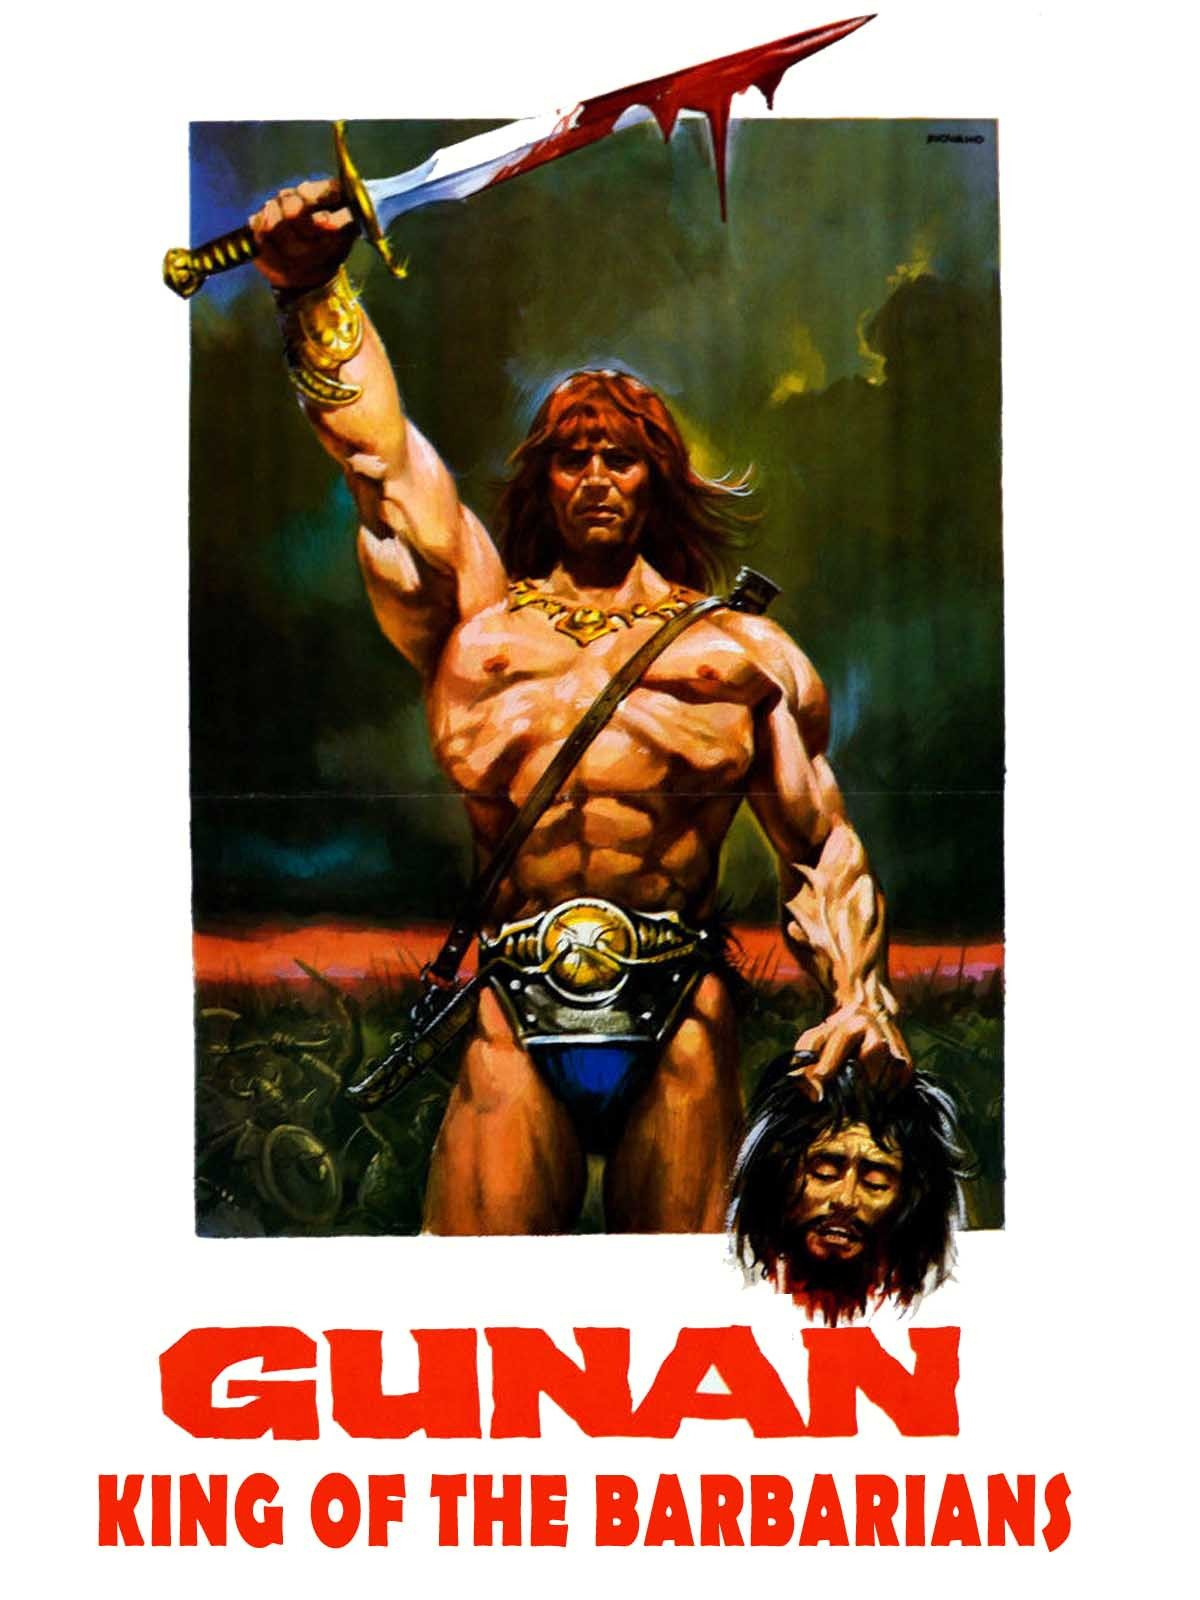 Gunan King Of The Barbarians